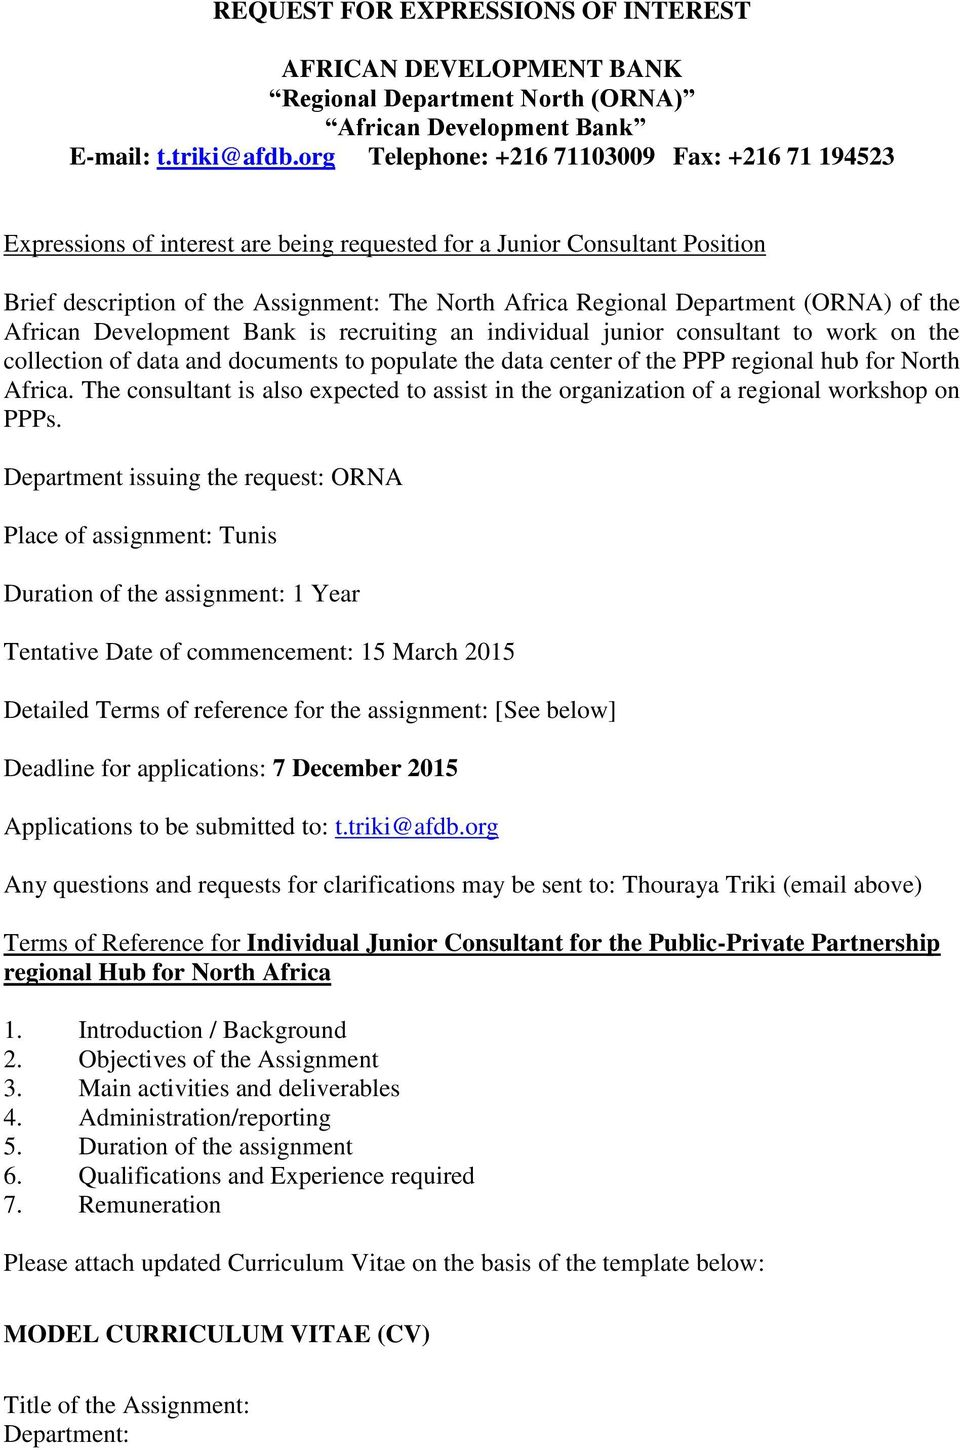 (ORNA) of the African Development Bank is recruiting an individual junior consultant to work on the collection of data and documents to populate the data center of the PPP regional hub for North